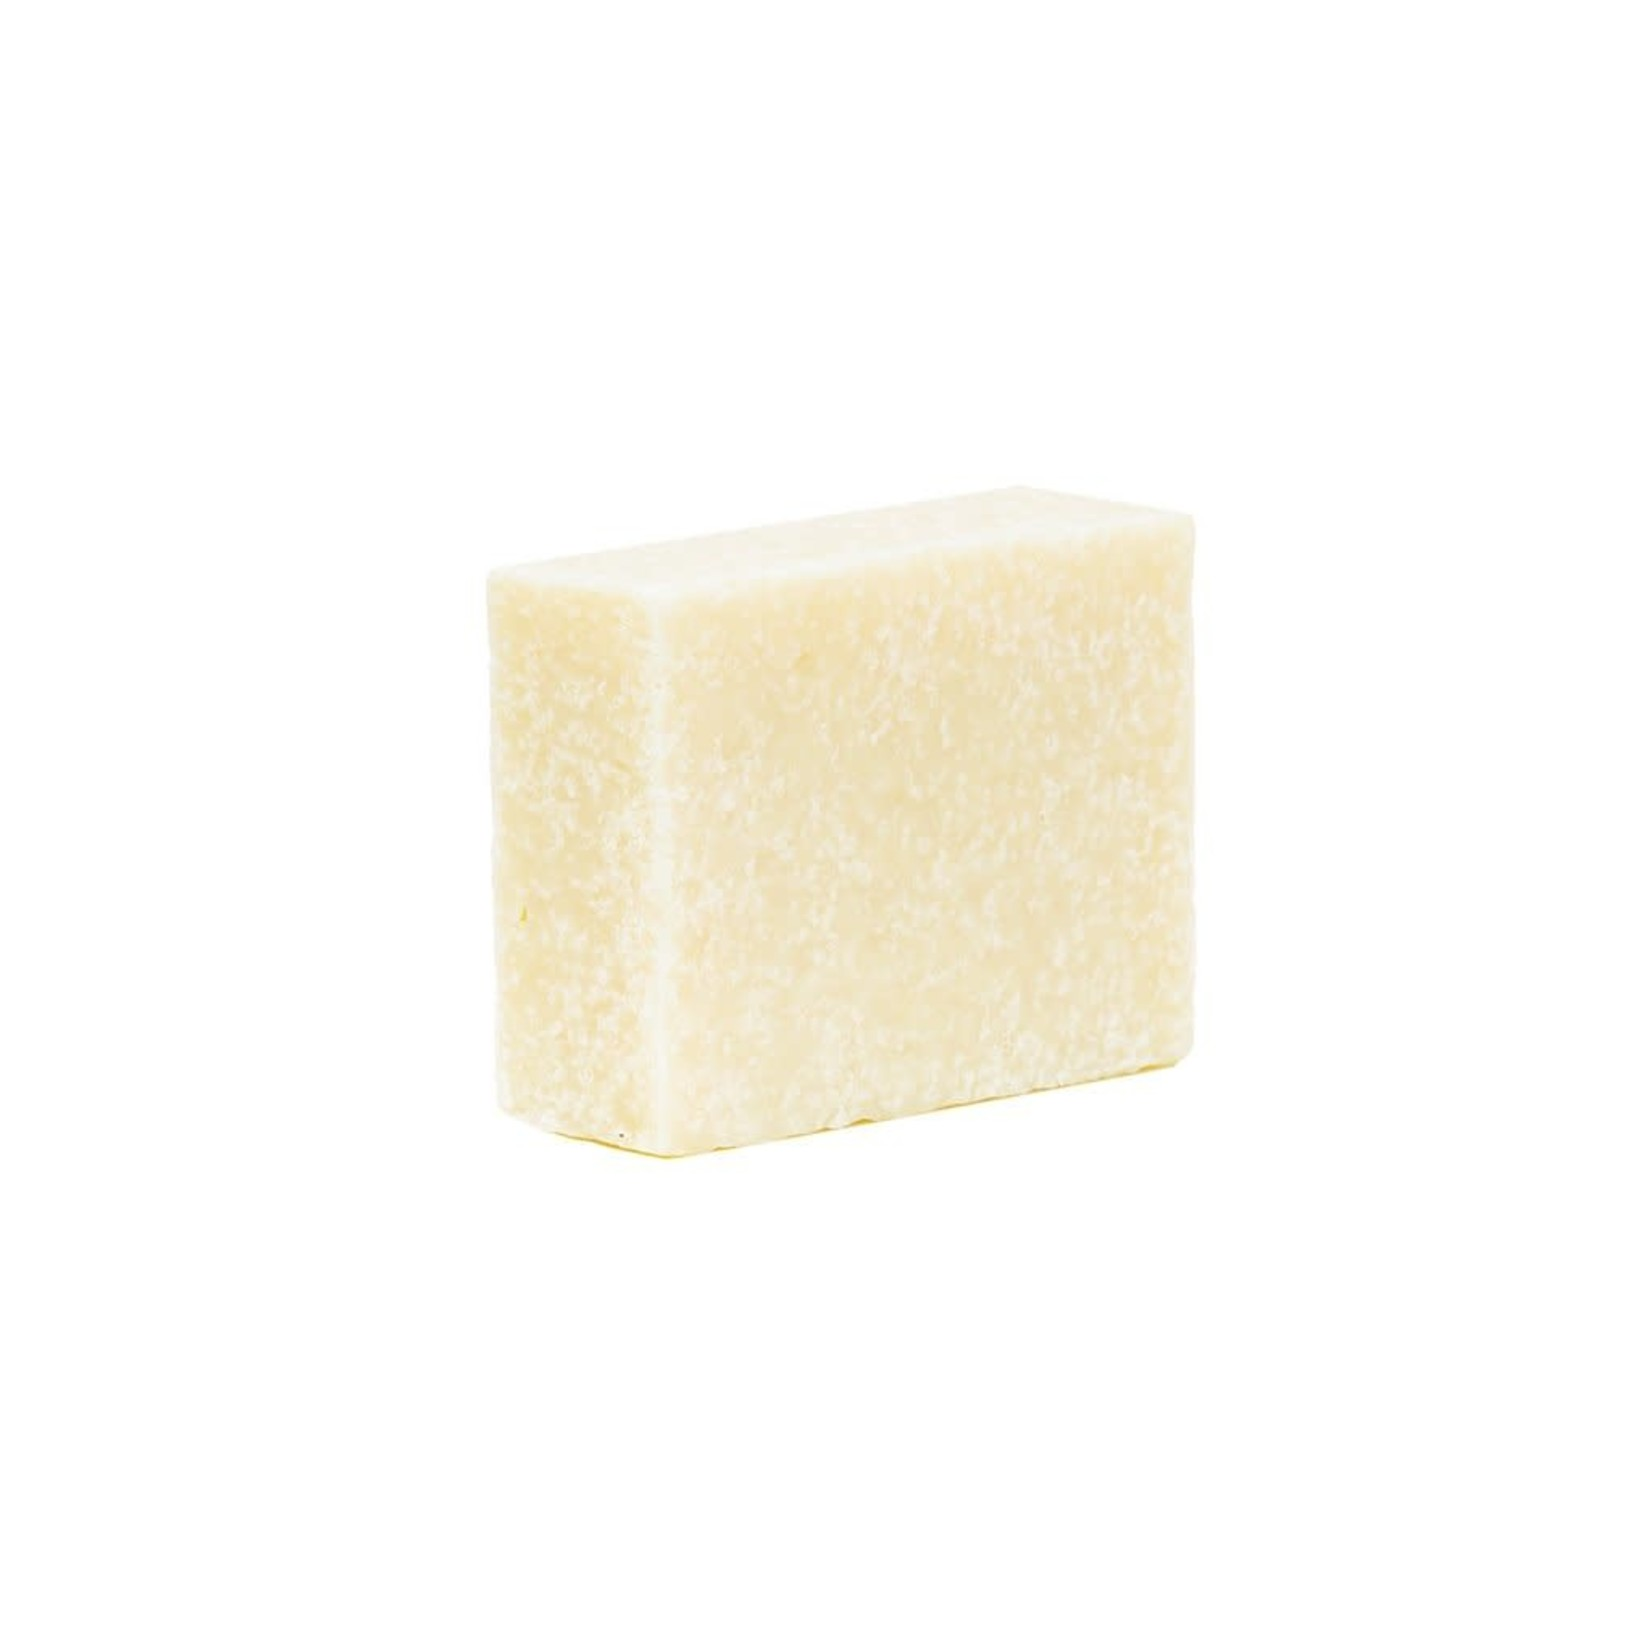 UNWRAPPED LIFE Vegan Bar Soap Calm